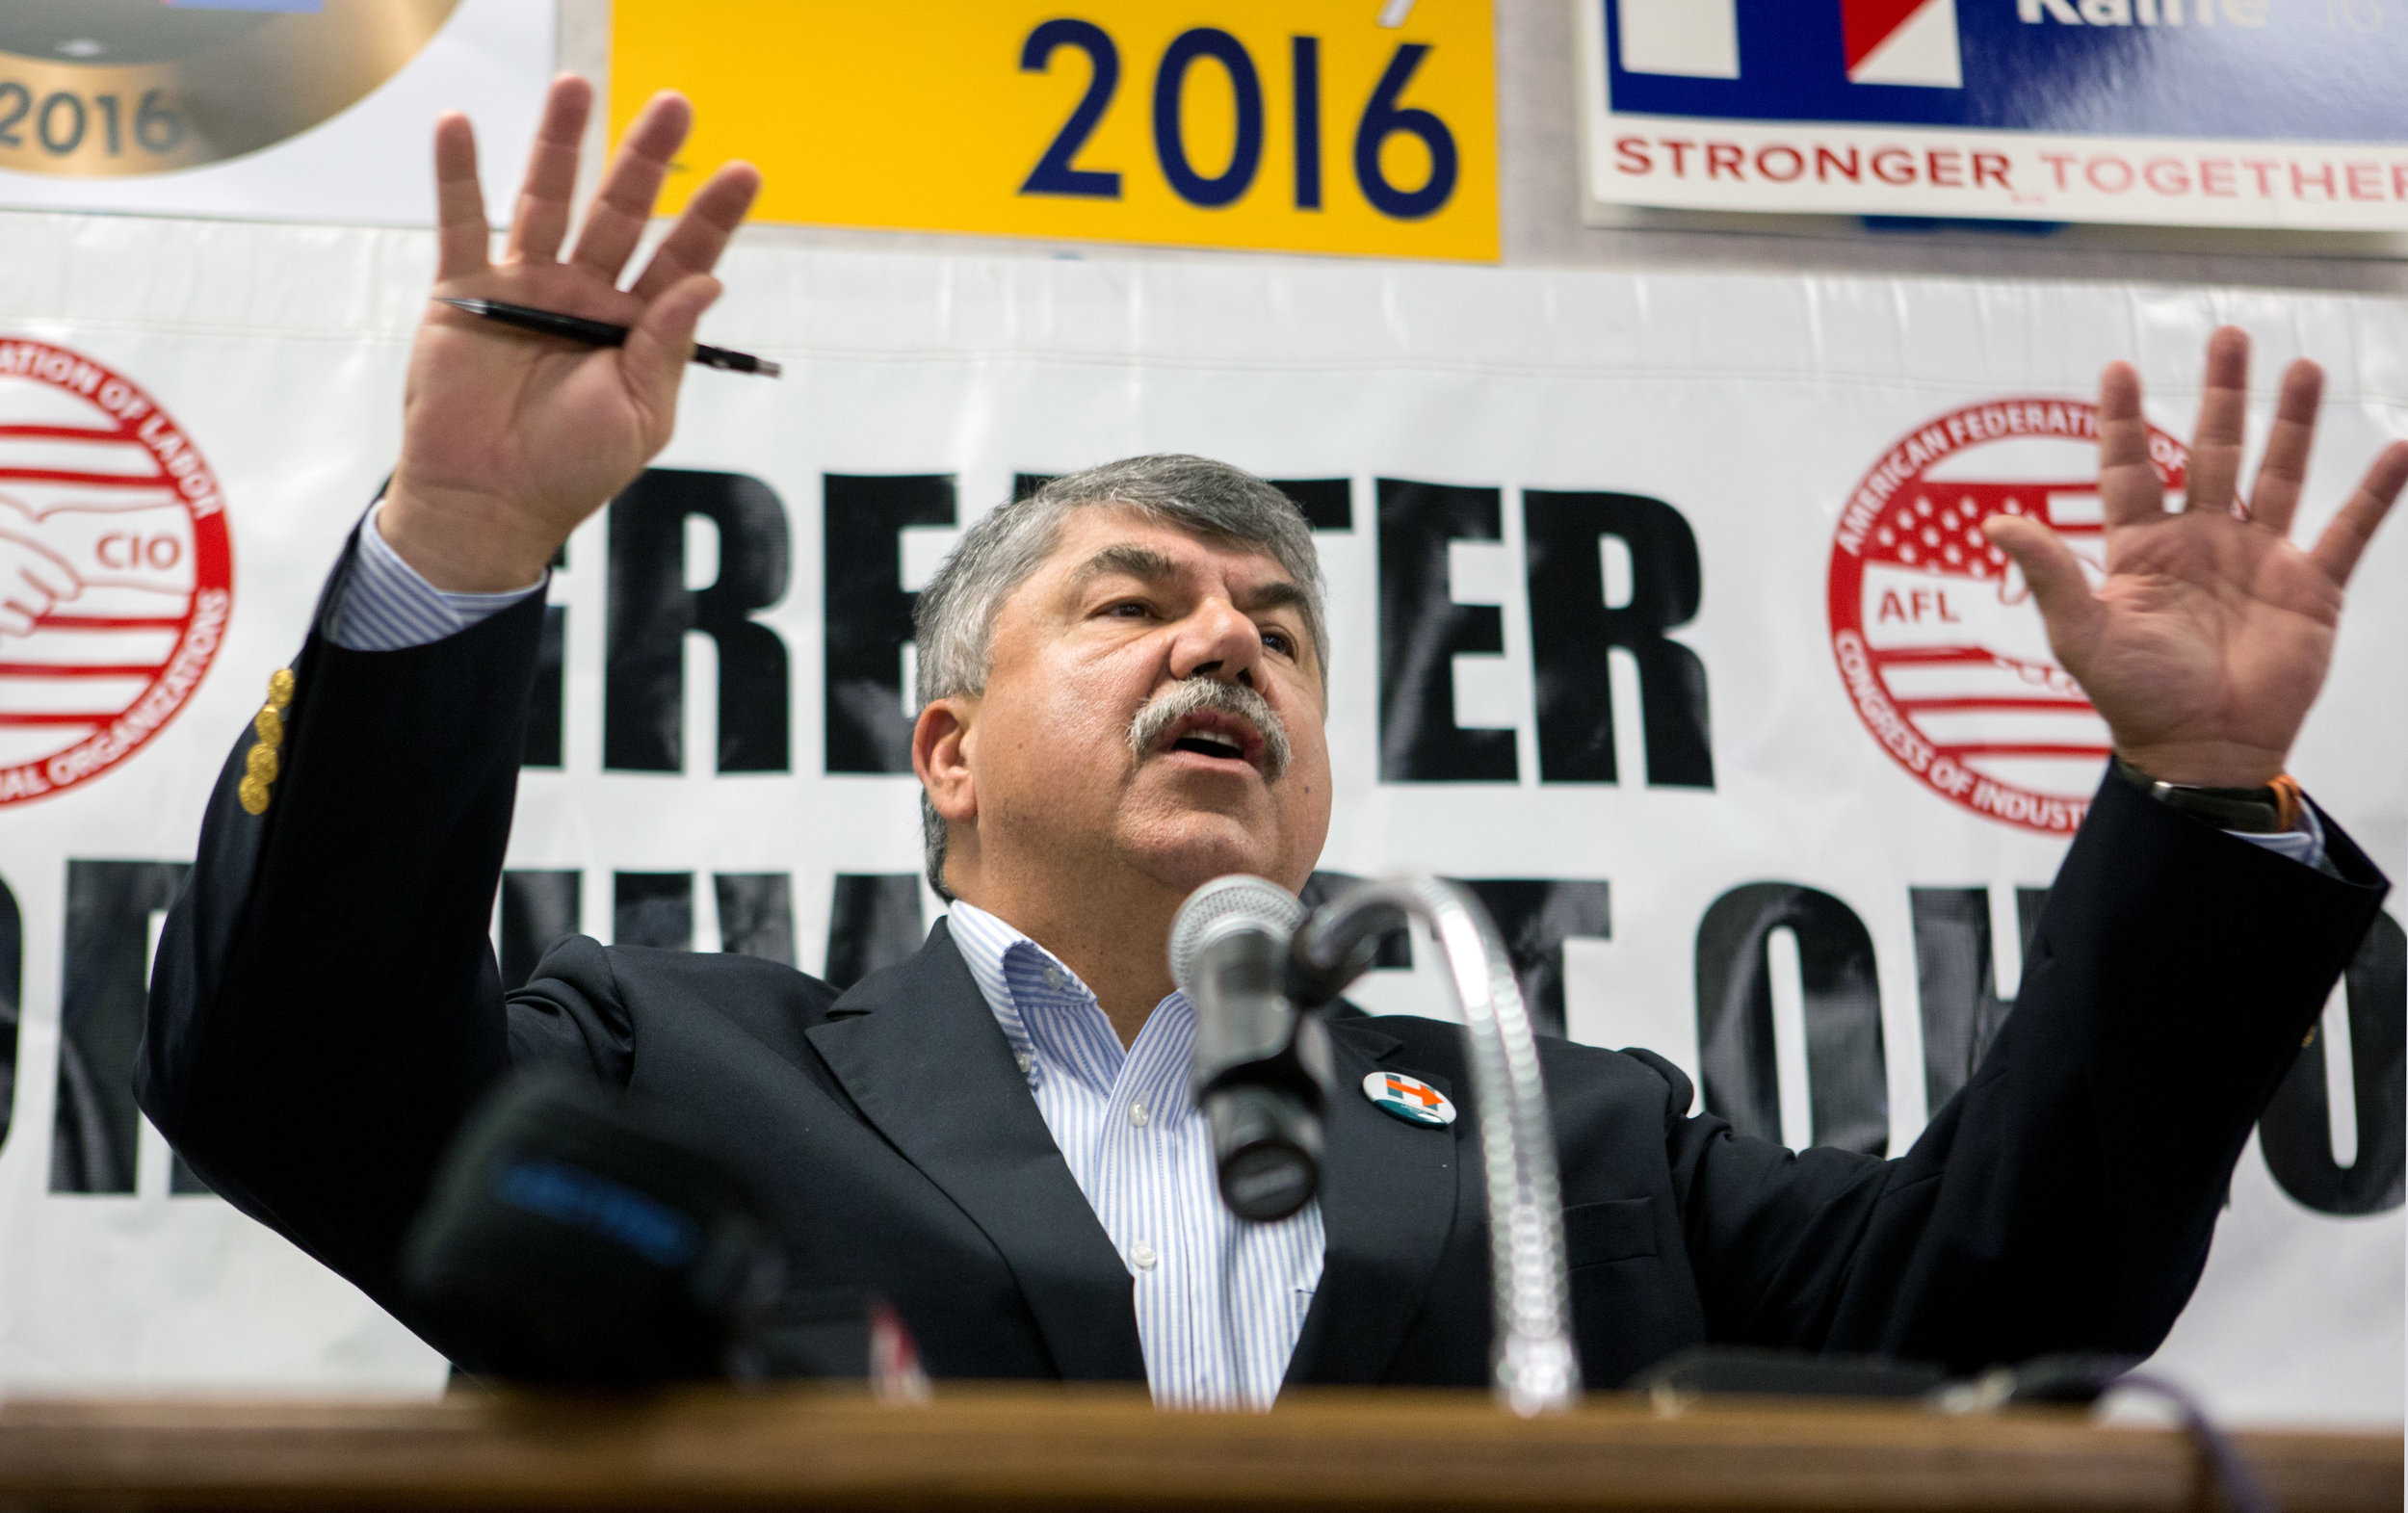 President of the American Federation of Labor and Congress of Industrial Organizations Richard Trumka campaigns for Hillary Clinton and the Democratic Party for the upcoming election during a AFL-CIO rally to kick off a day of canvasing at Toledo Federation of Teachers building in south west Toledo on Tuesday, Nov. 1, 2016.